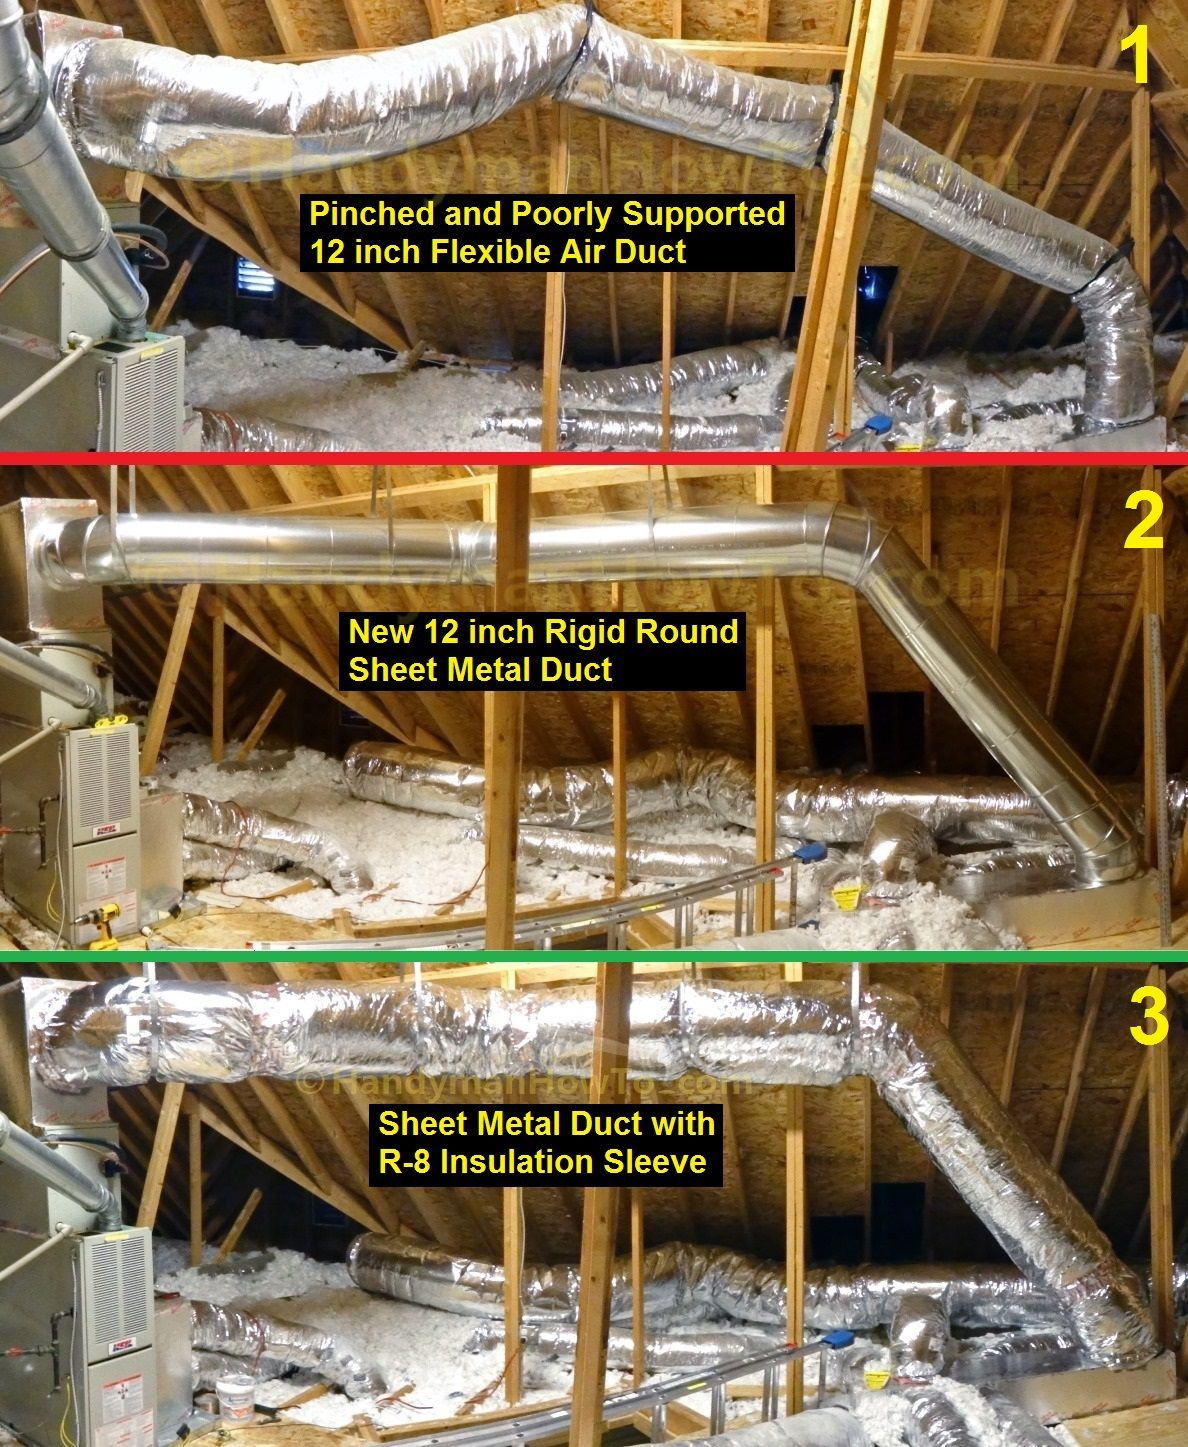 How To Install Round Sheet Metal Duct